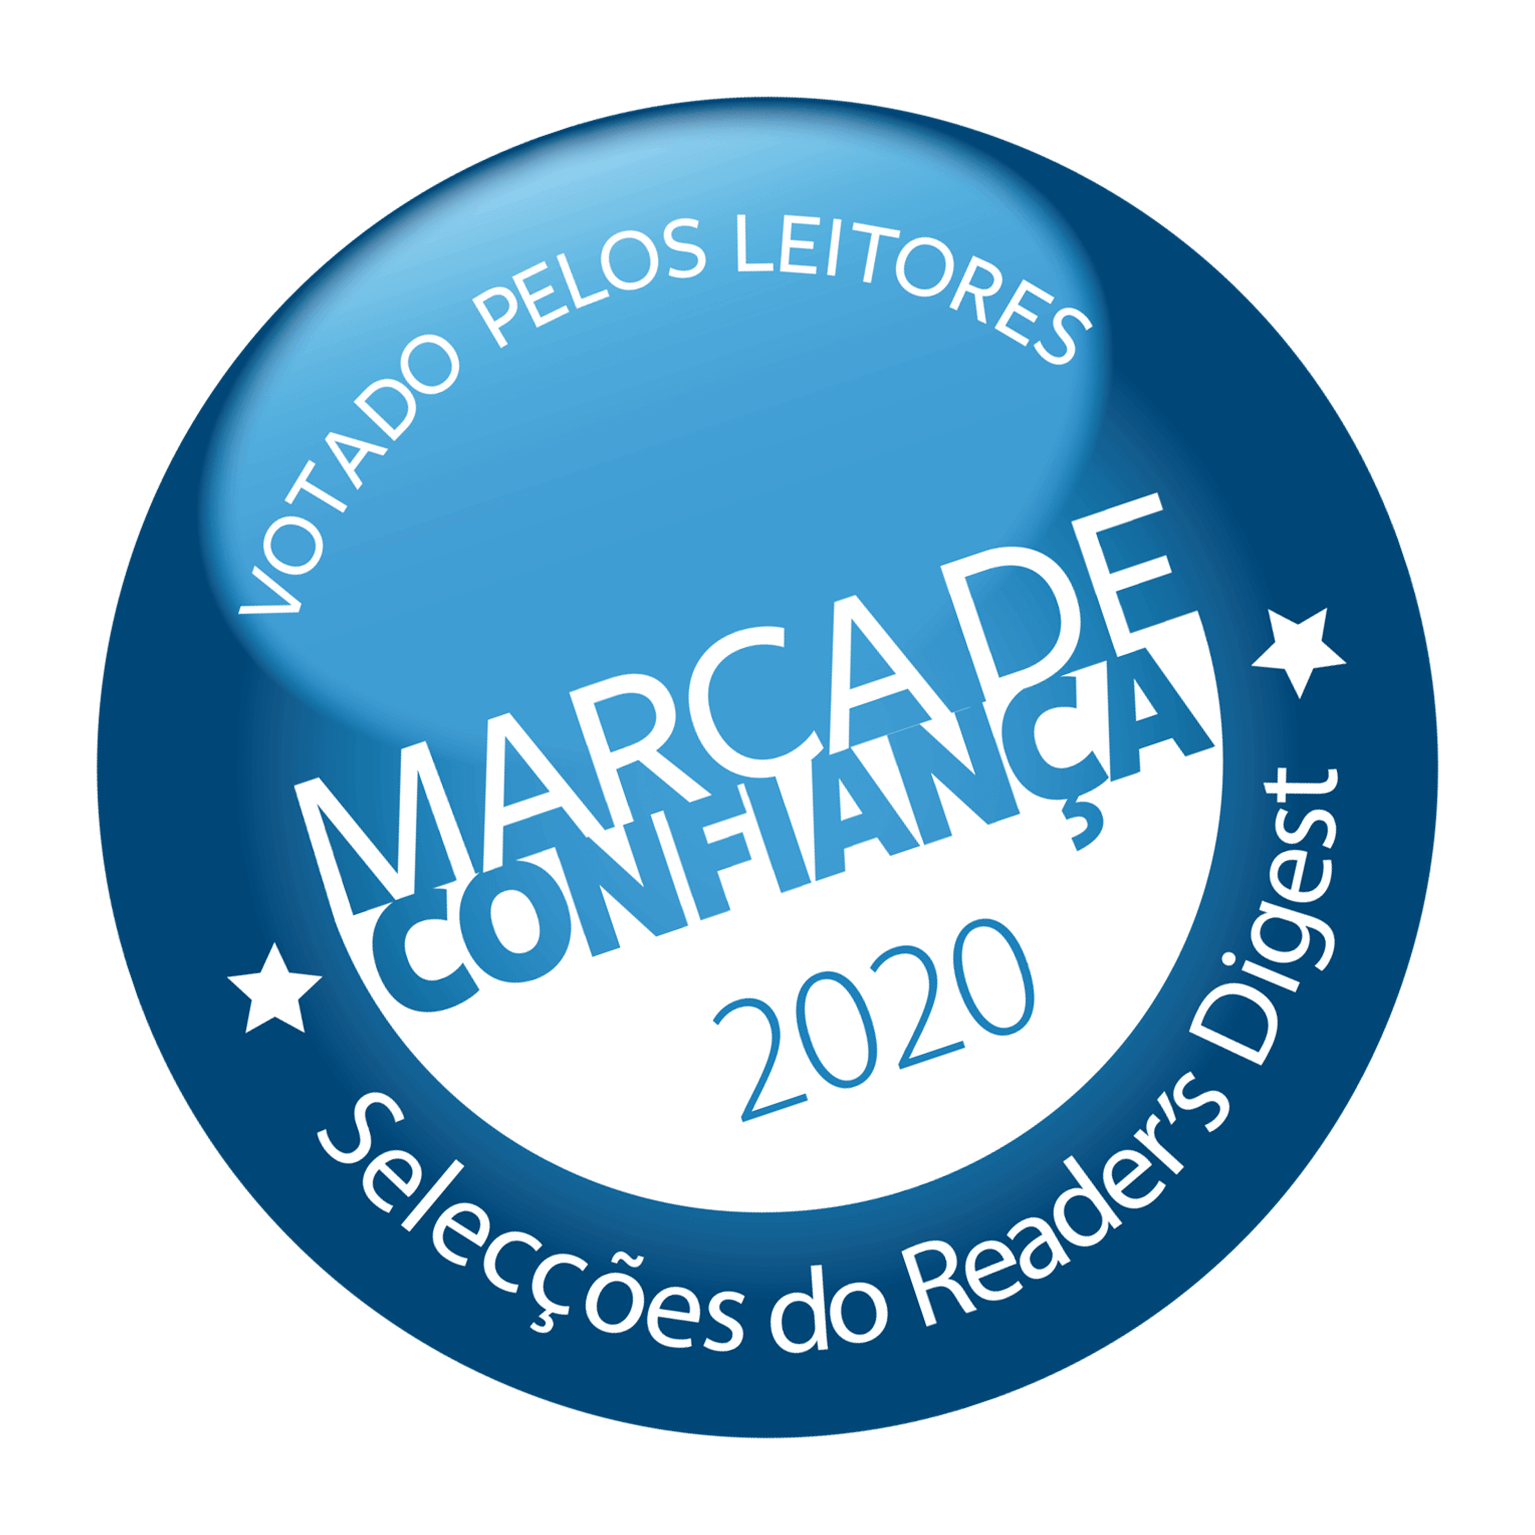 Marcas de Confiança